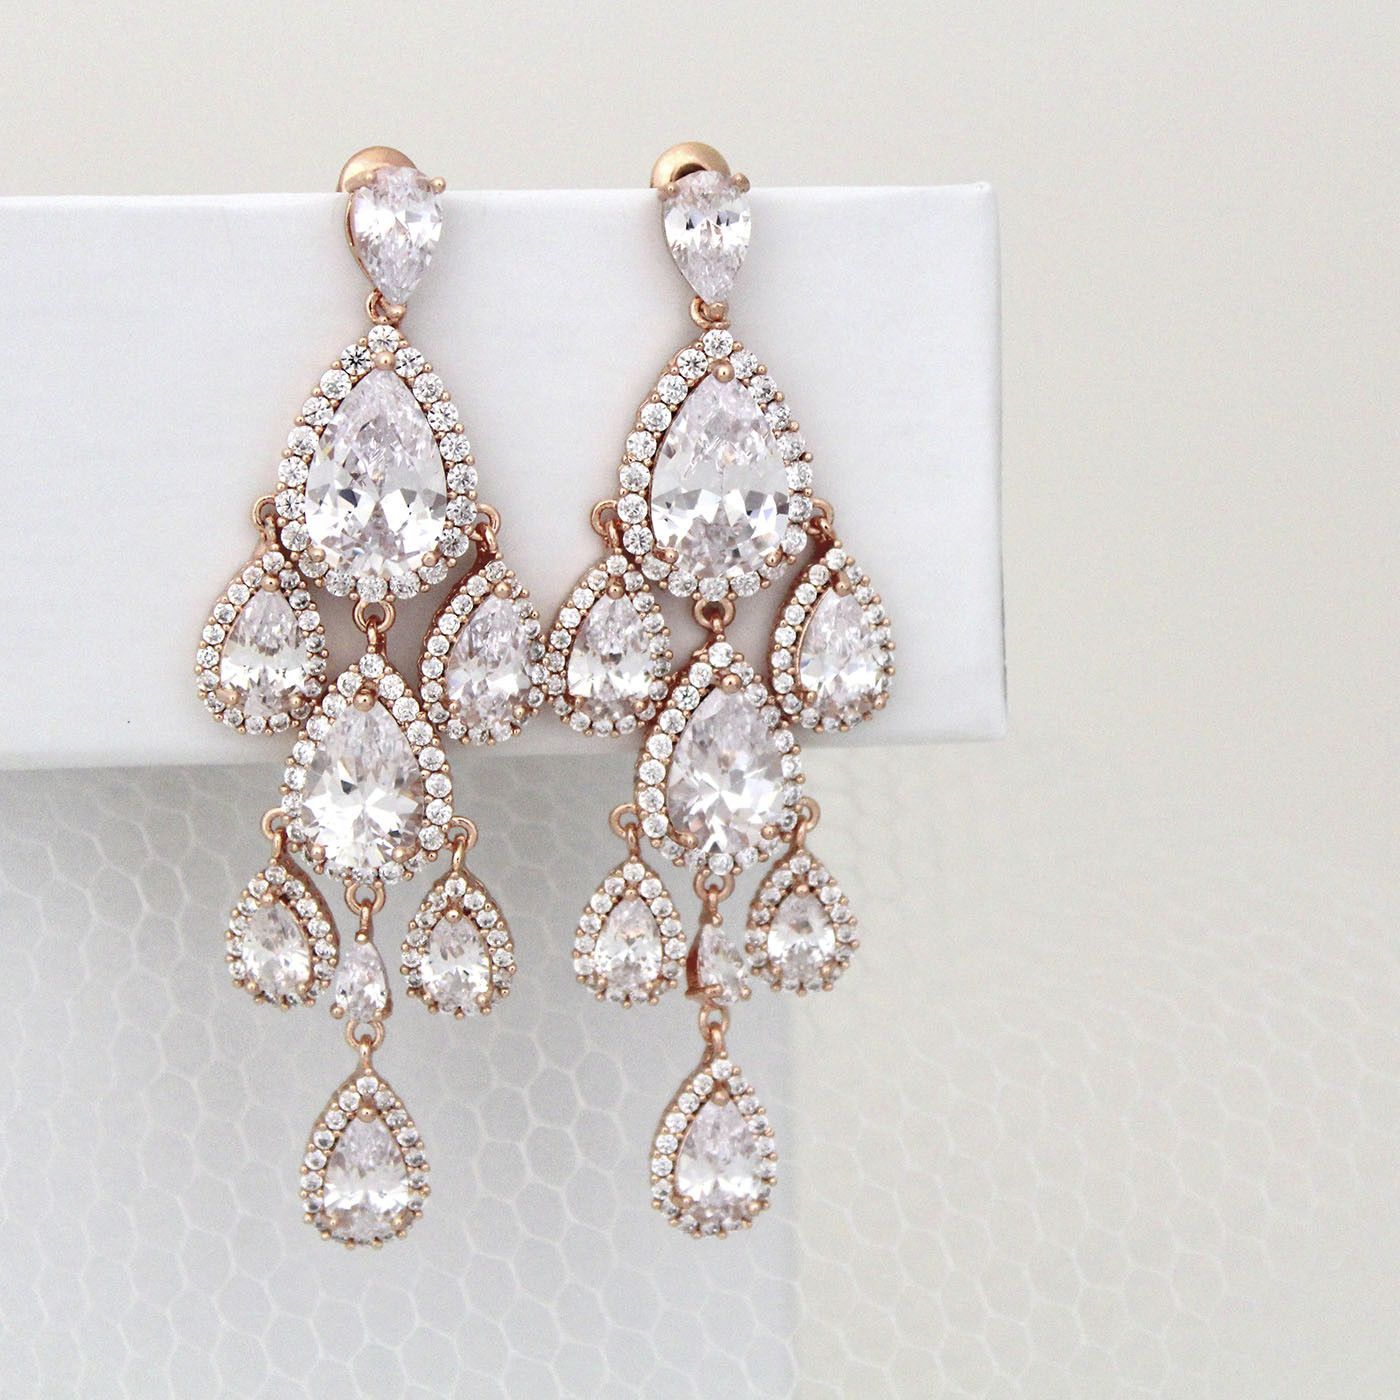 These Gorgeous Waterfall Teardrop Crystal Chandelier Bridal Earrings Are Simply Stunning Created With Luxury Rose Gold Plated Cubic Zirconia Components